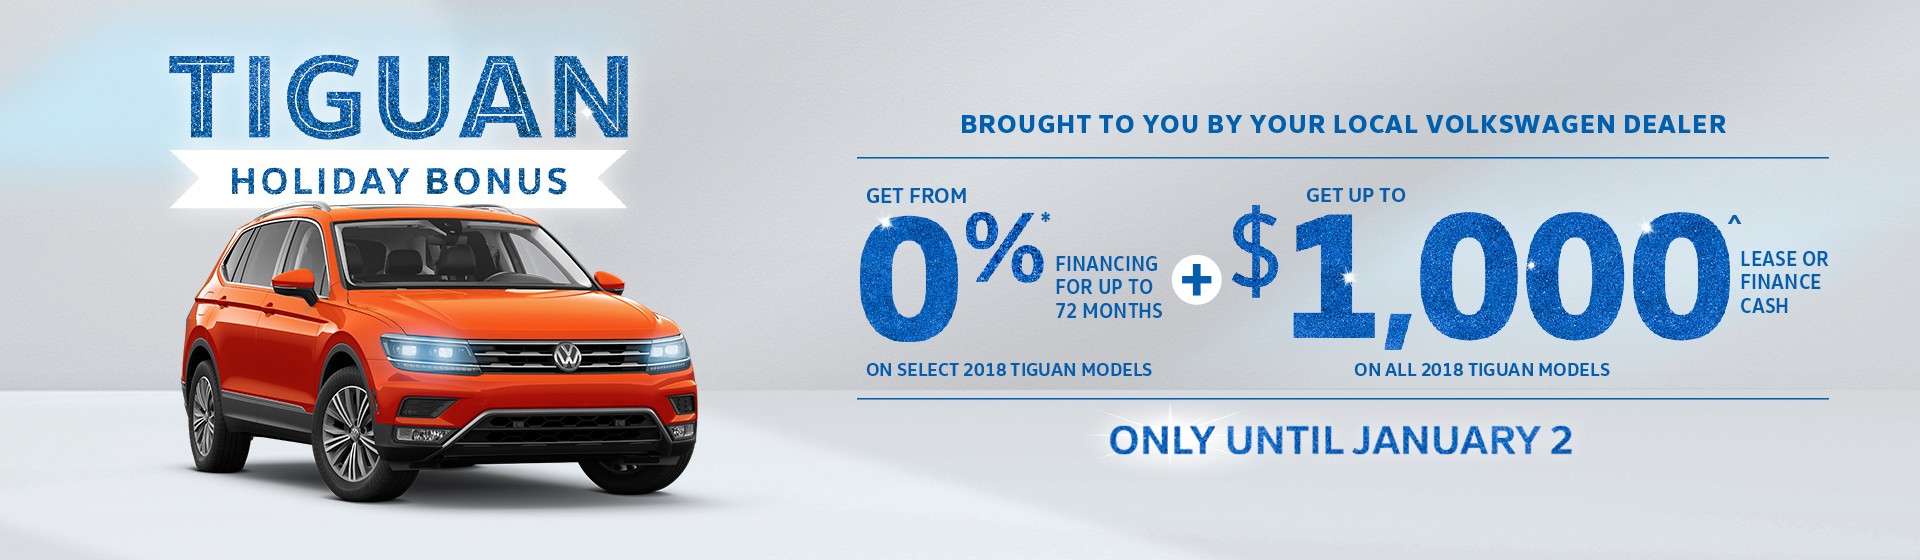 MId-December Tiguan Holiday Bonus offer